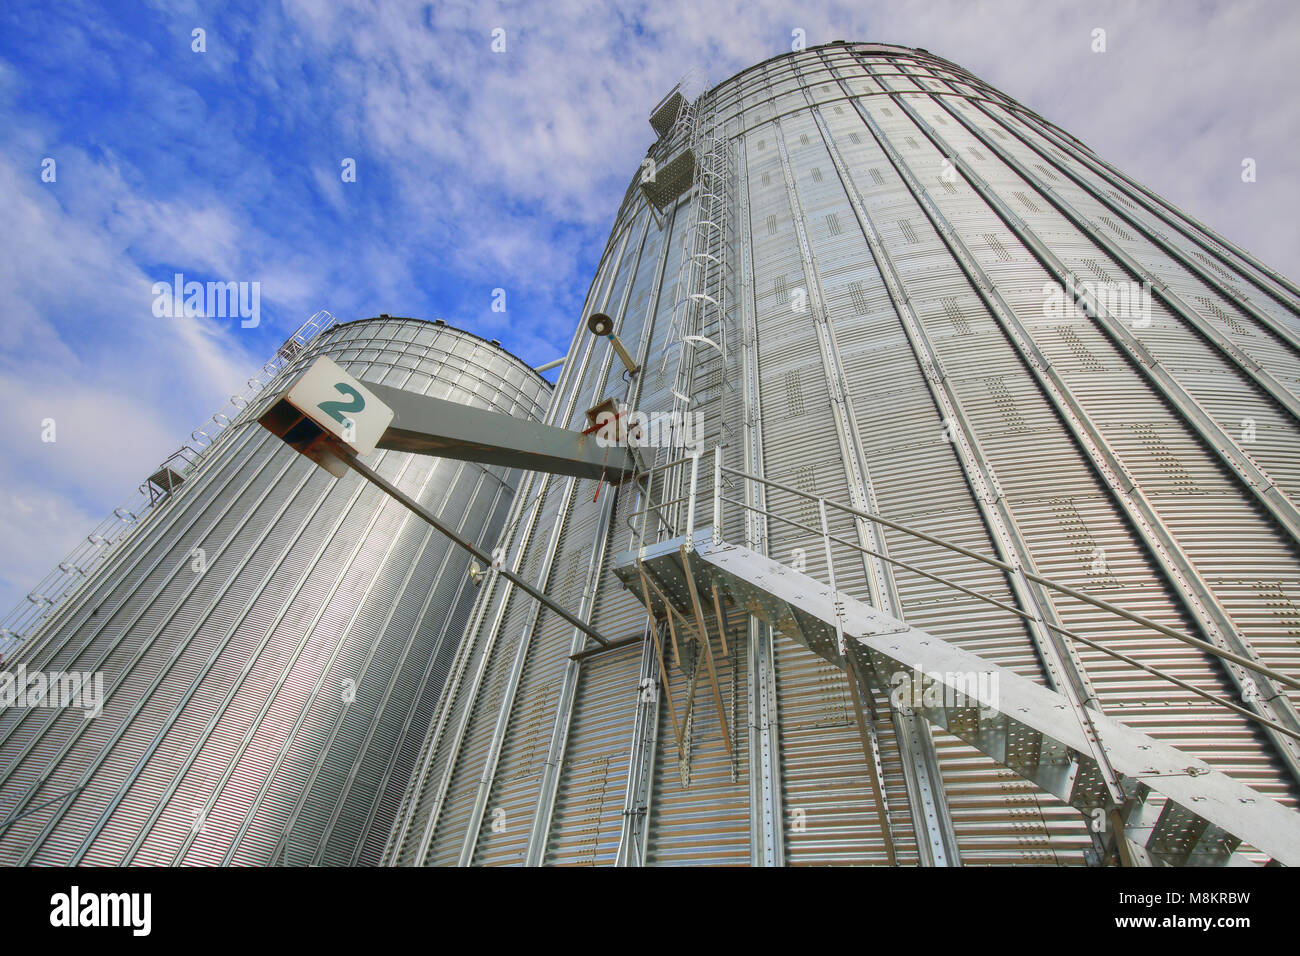 Agricultural Silos in Ontario, Canada - Stock Image